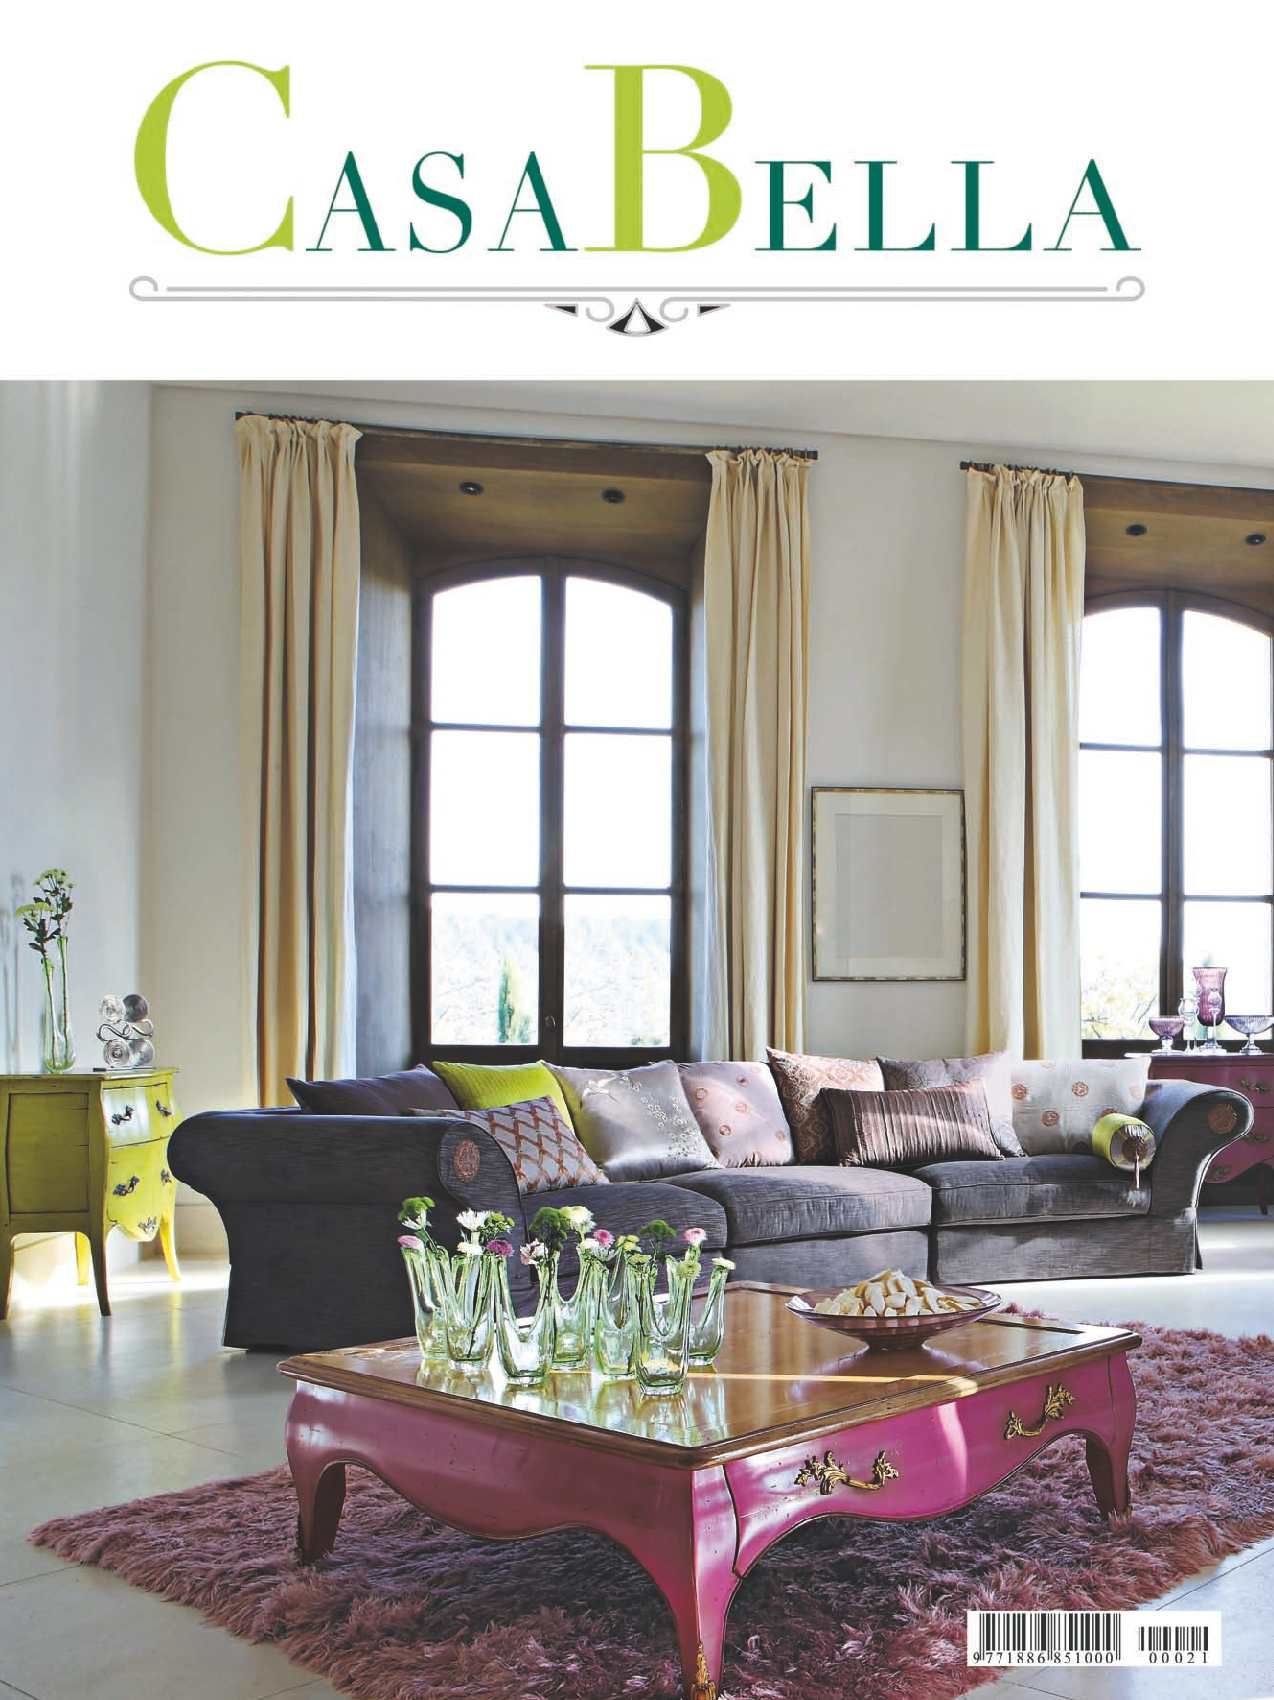 Calam o revista decoraci n casa bella for Bella casa d artigiano